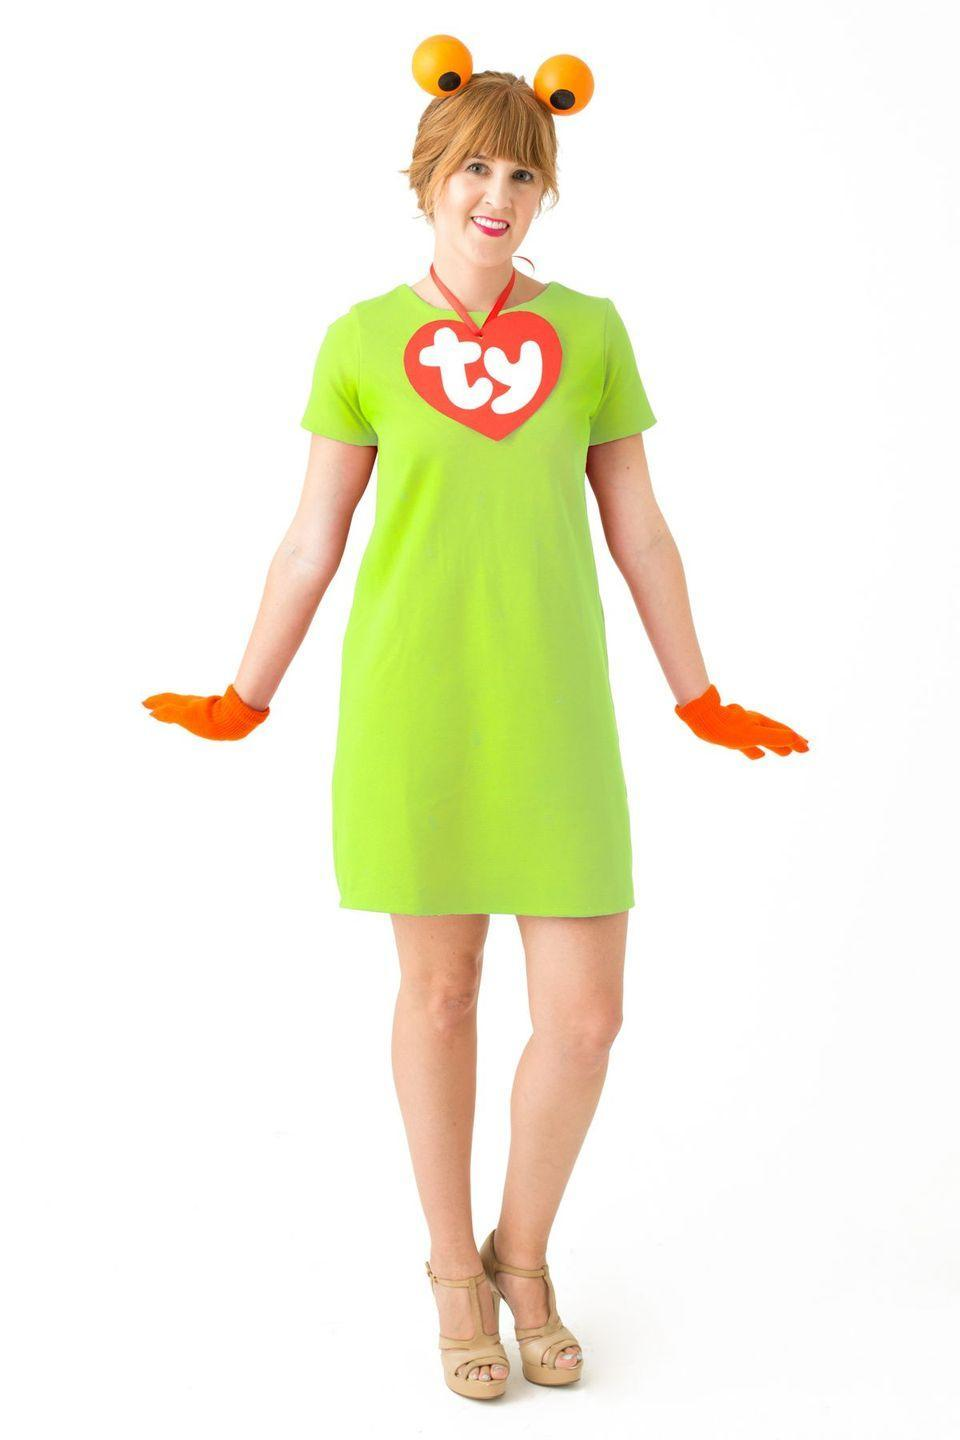 """<p>Customize this costume by simply adding the """"TY"""" tag to any outfit resembling your favorite beanie baby toy. </p><p><strong><em><a href=""""https://studiodiy.com/diy-90s-toys-costumes//"""" rel=""""nofollow noopener"""" target=""""_blank"""" data-ylk=""""slk:Get the tutorial at Studio DIY"""" class=""""link rapid-noclick-resp"""">Get the tutorial at Studio DIY</a>. </em></strong></p>"""